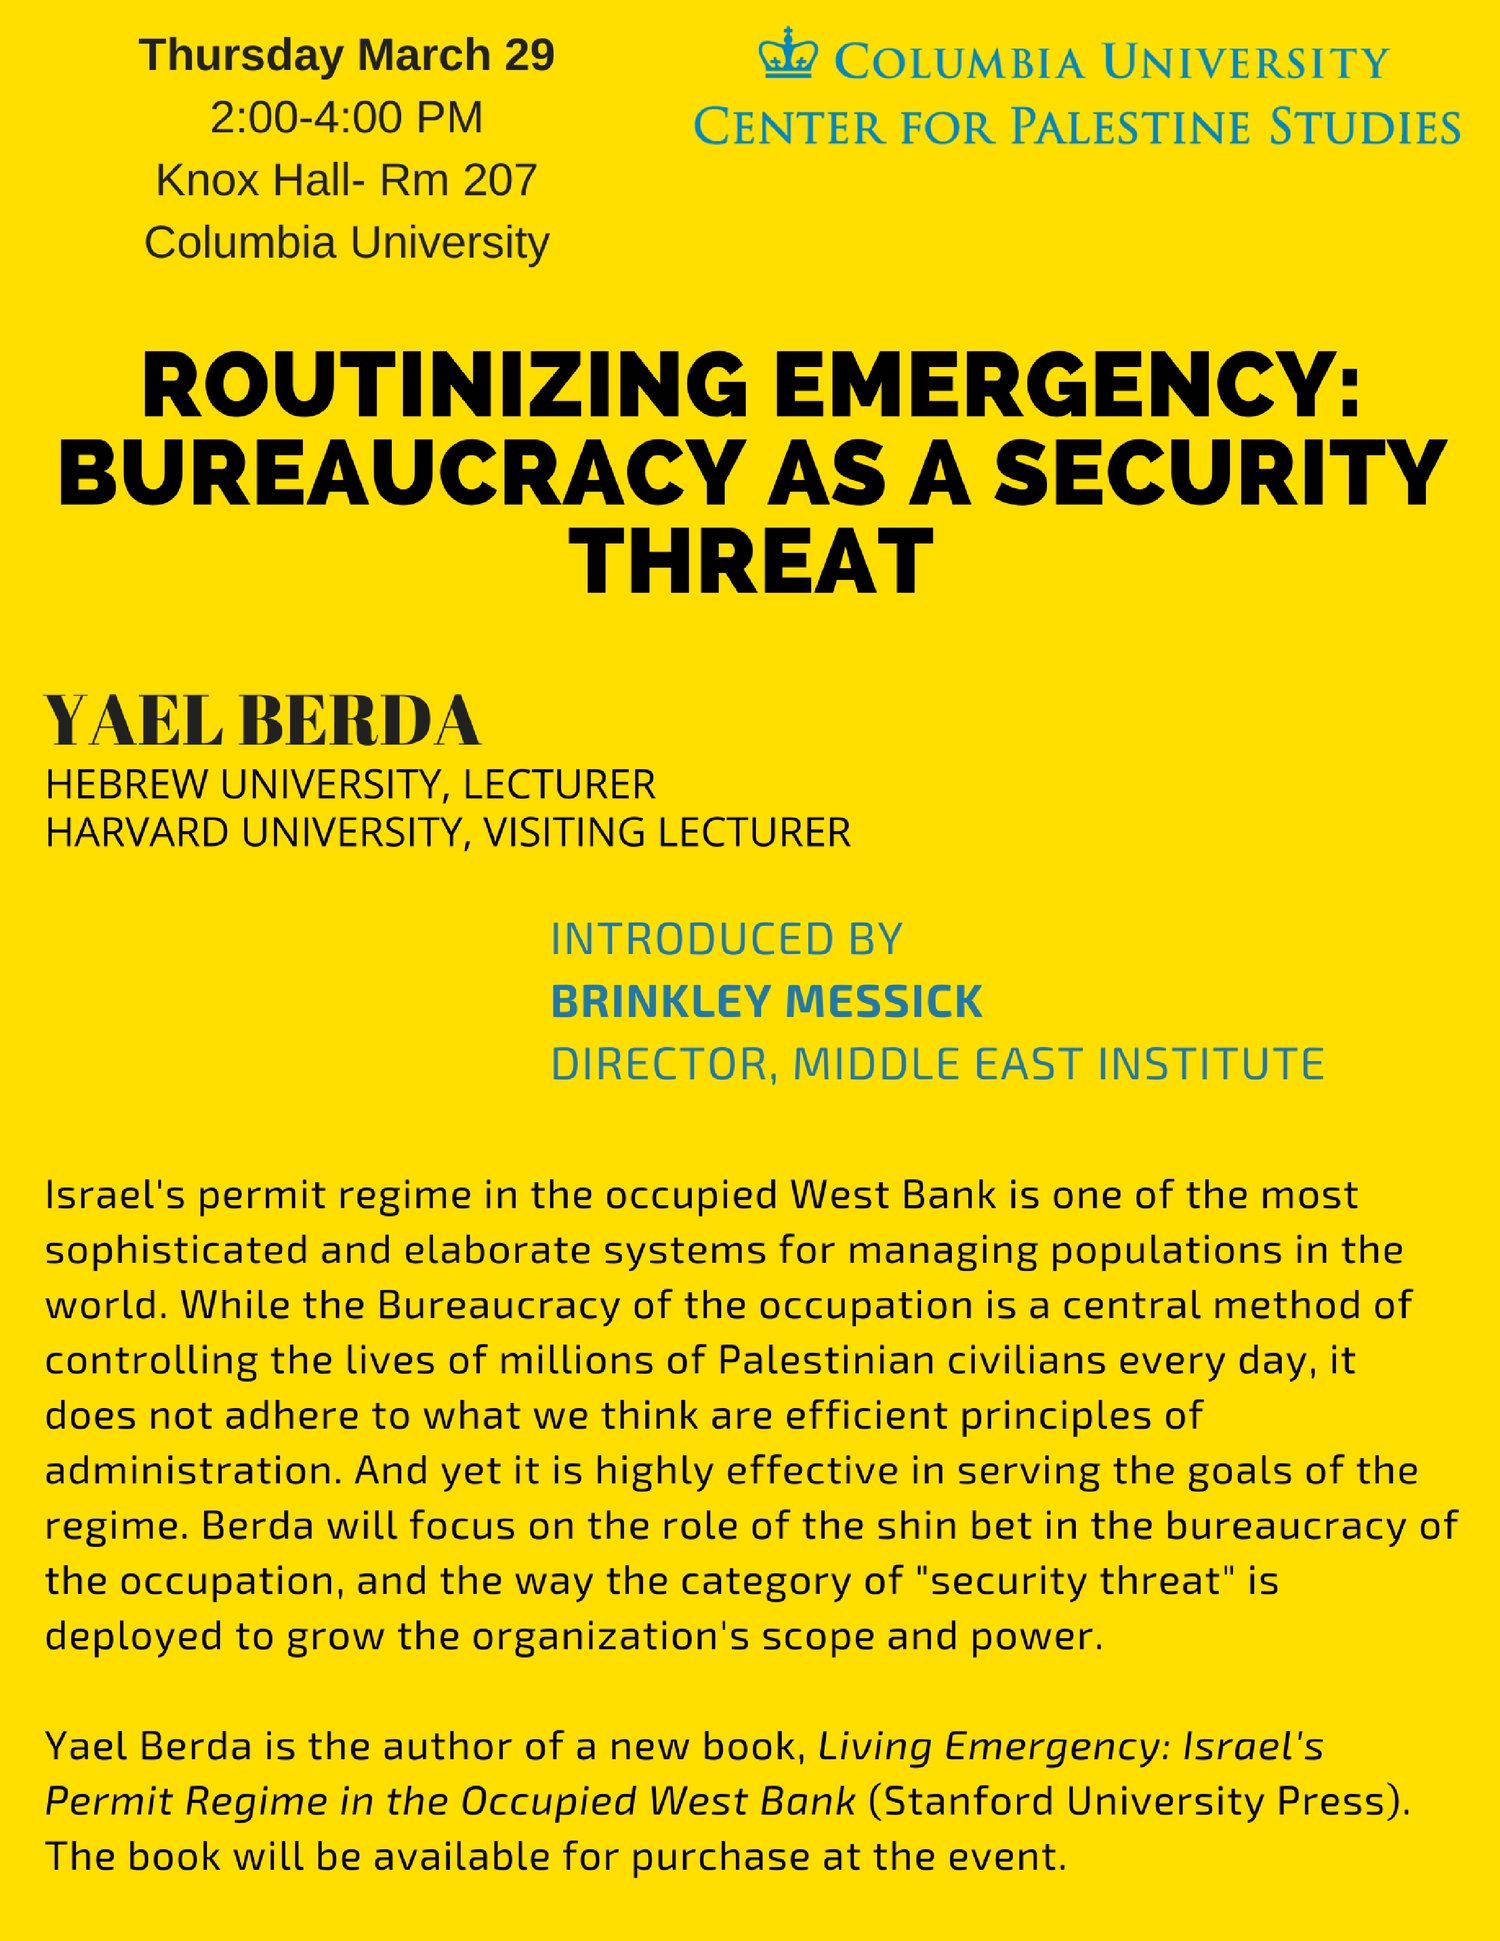 Routinizing Emergency: Bureaucracy as a Security Threat